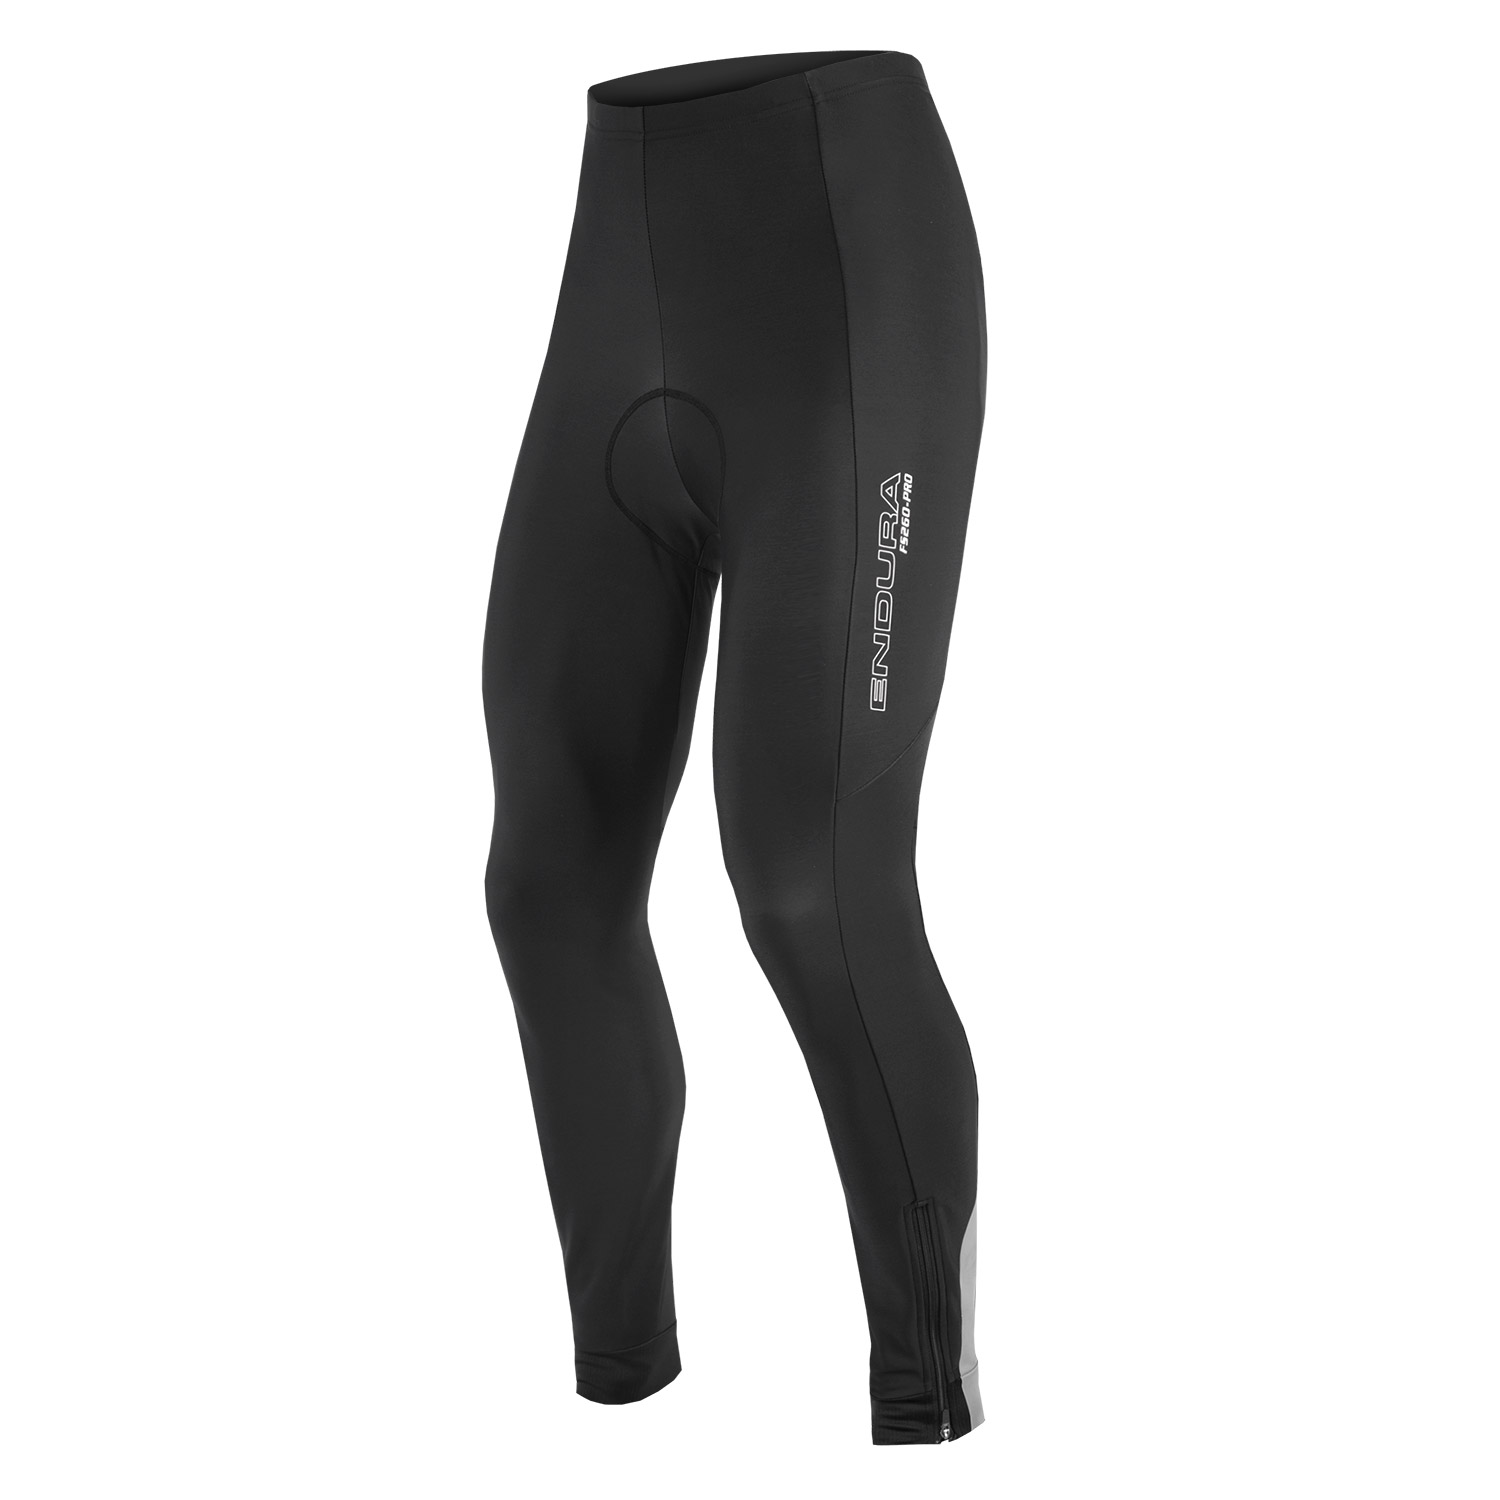 FS260-Pro Thermo Tight  Black